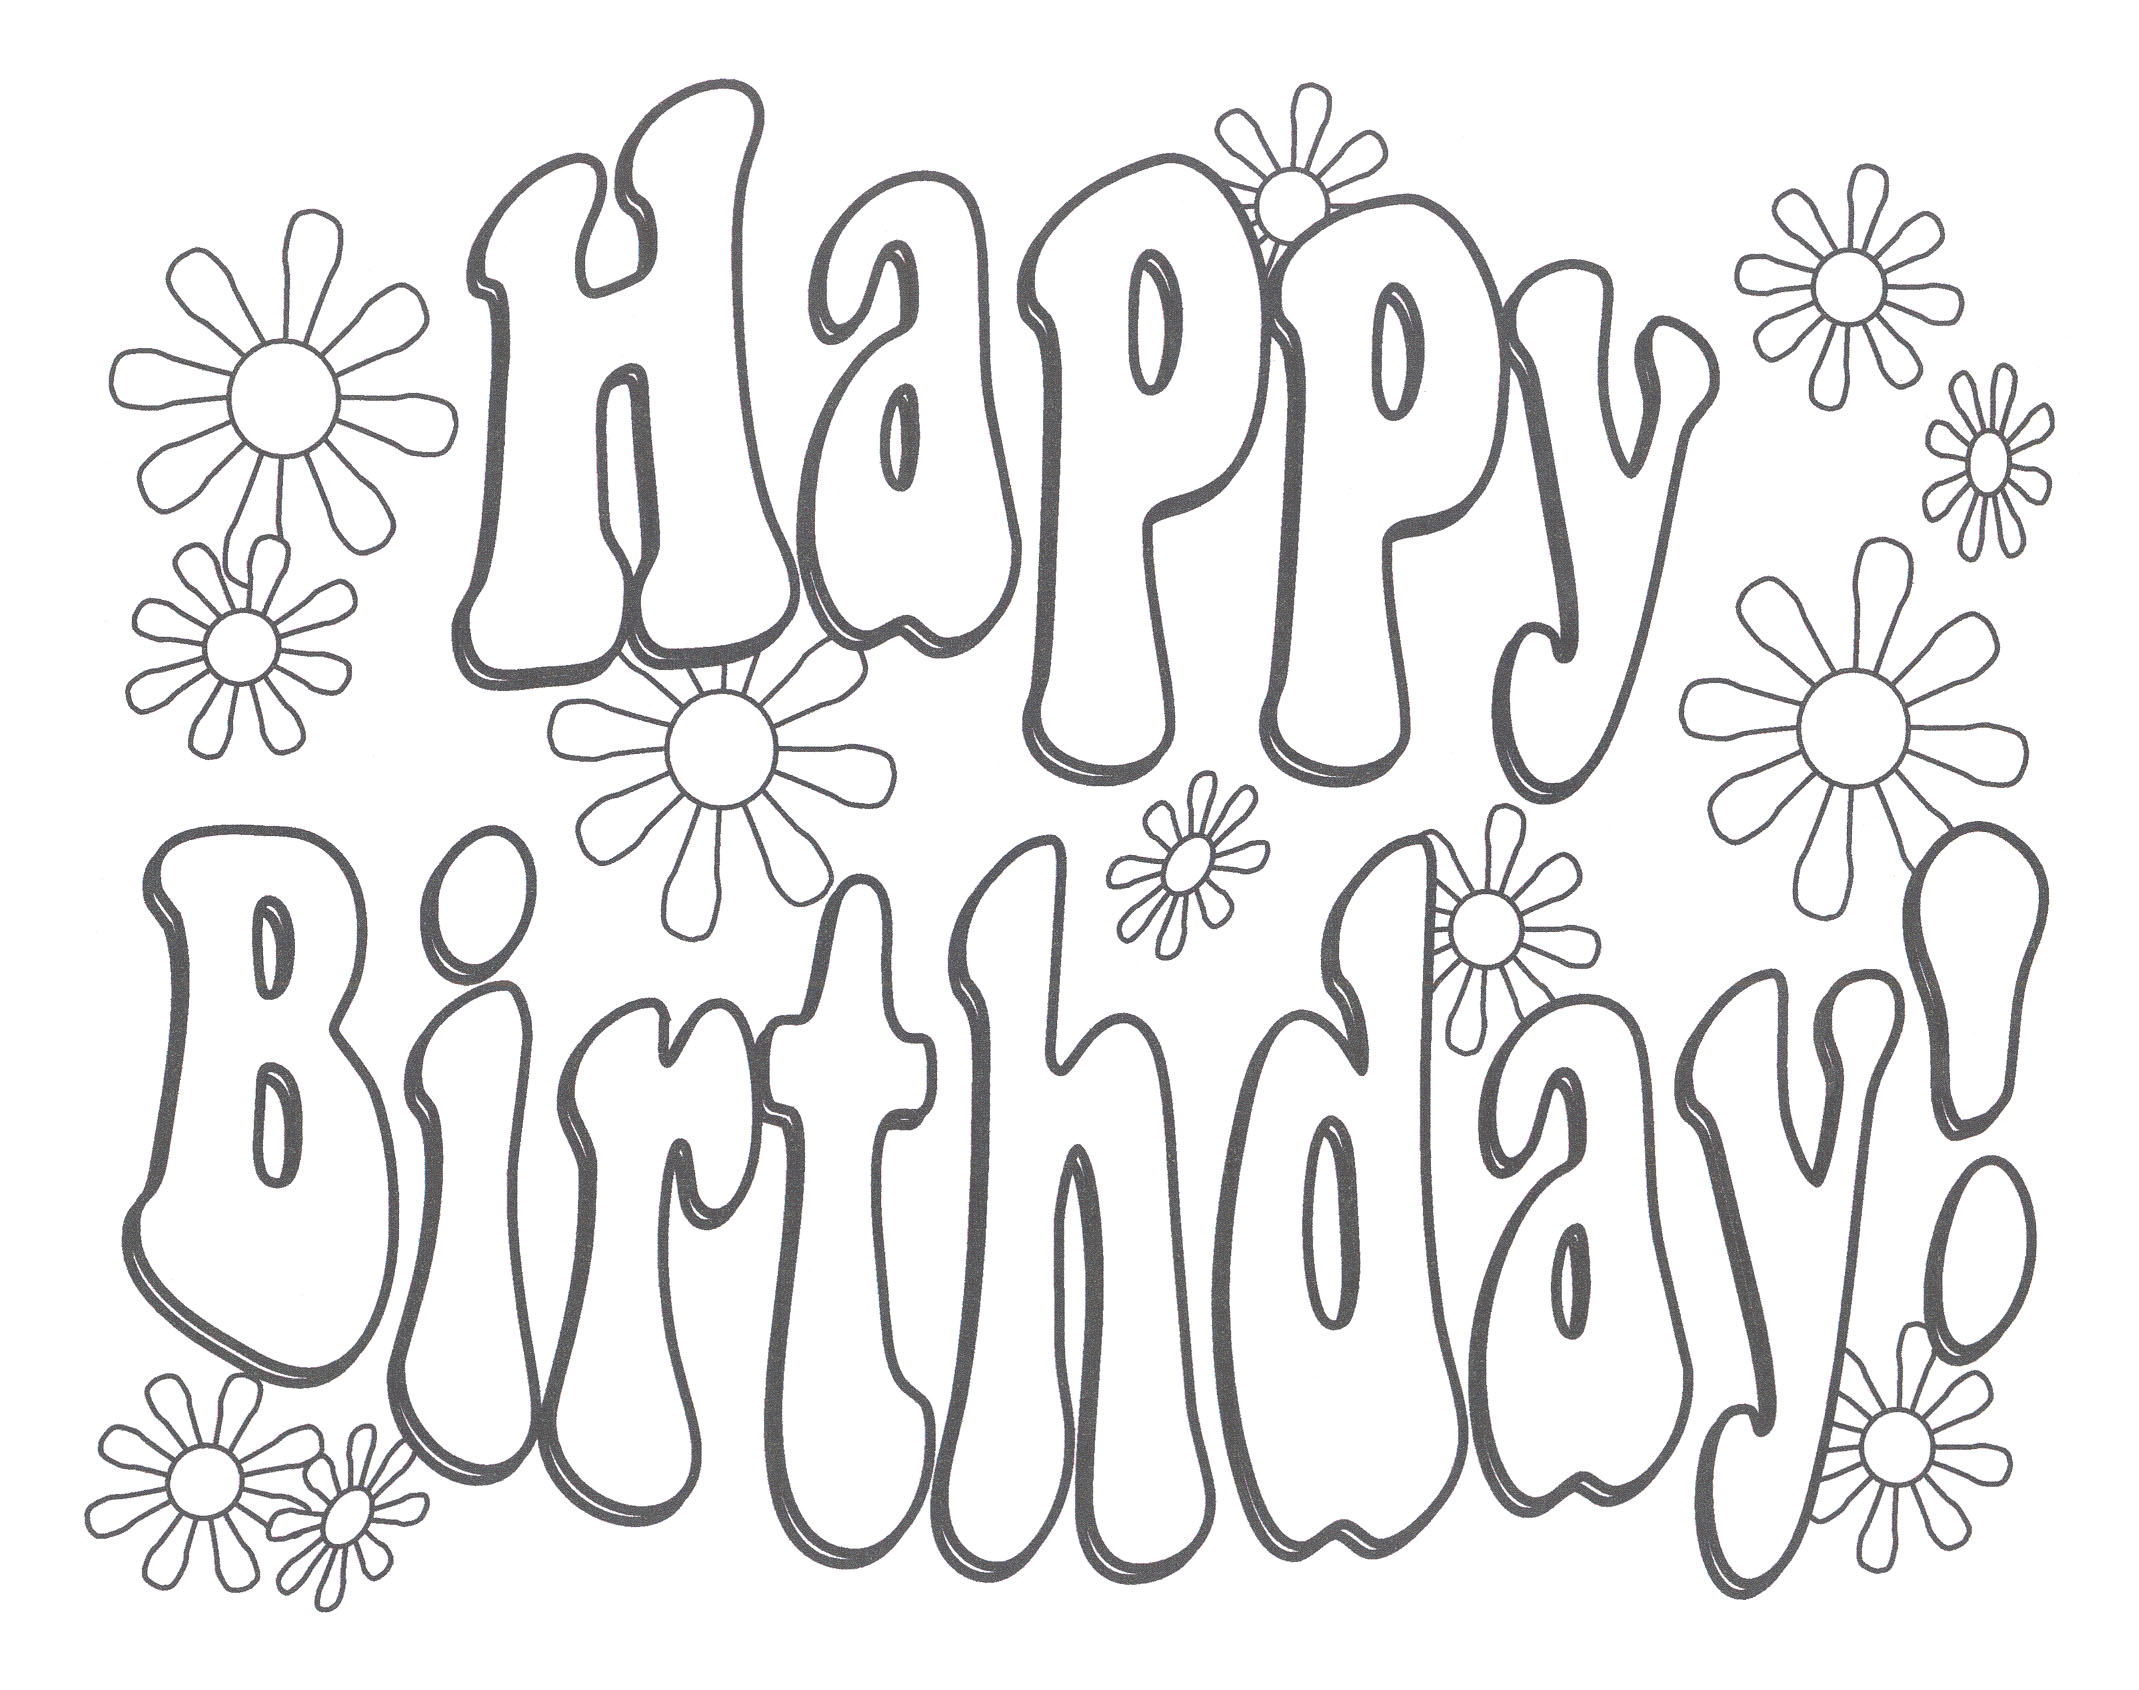 happy birthday coloring ; unique-happy-birthday-coloring-page-pages-montenegroplaze-me